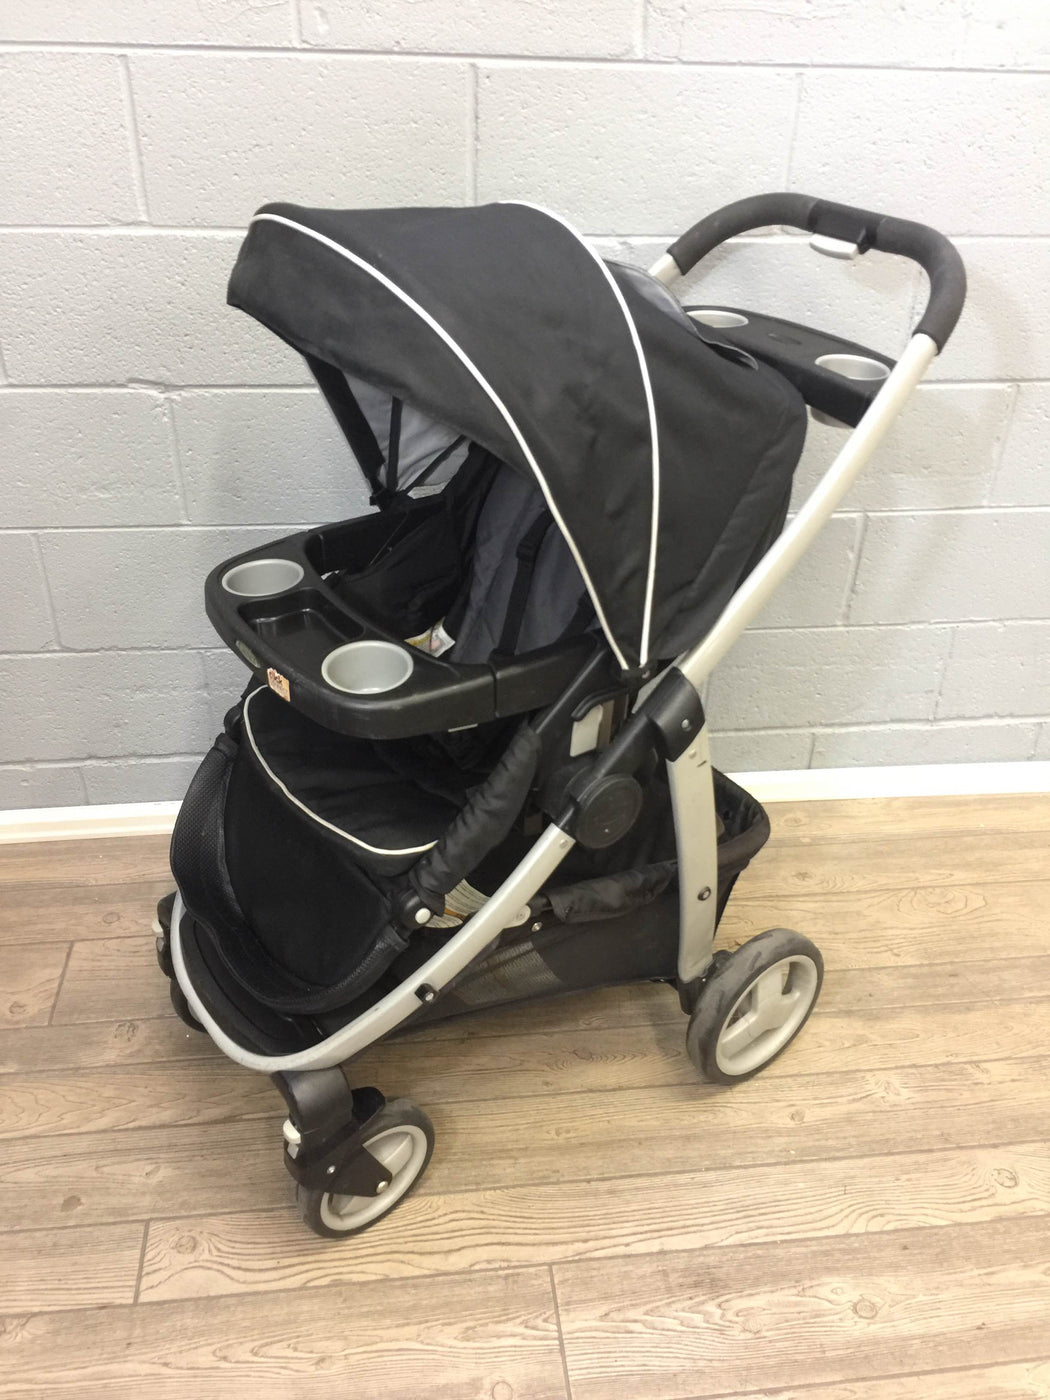 used Graco Modes Click Connect Stroller, 2013